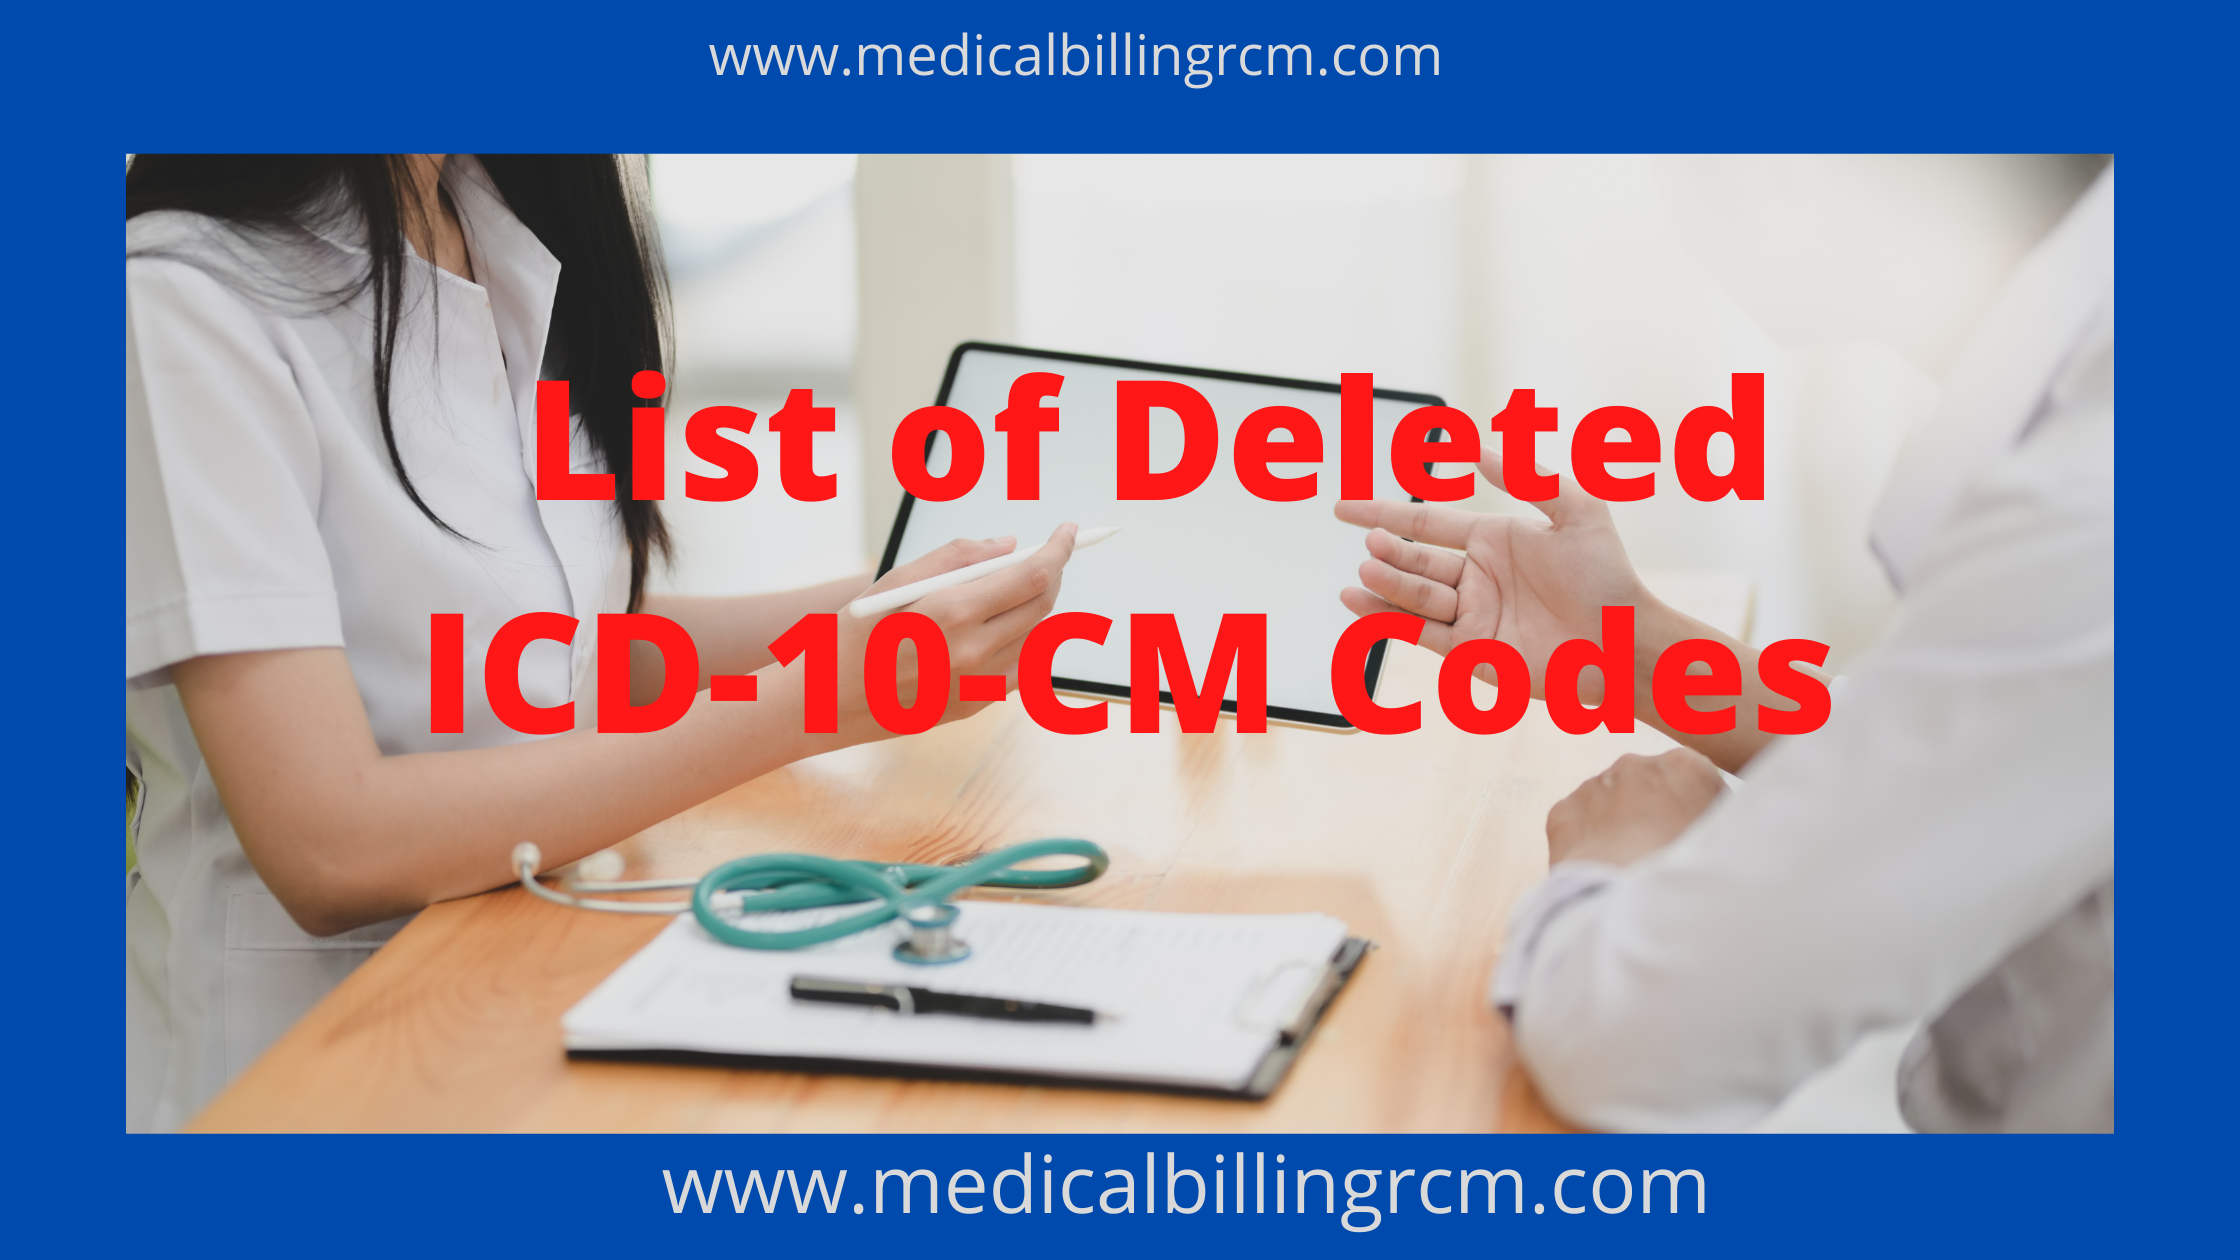 list of deleted icd-10 codes